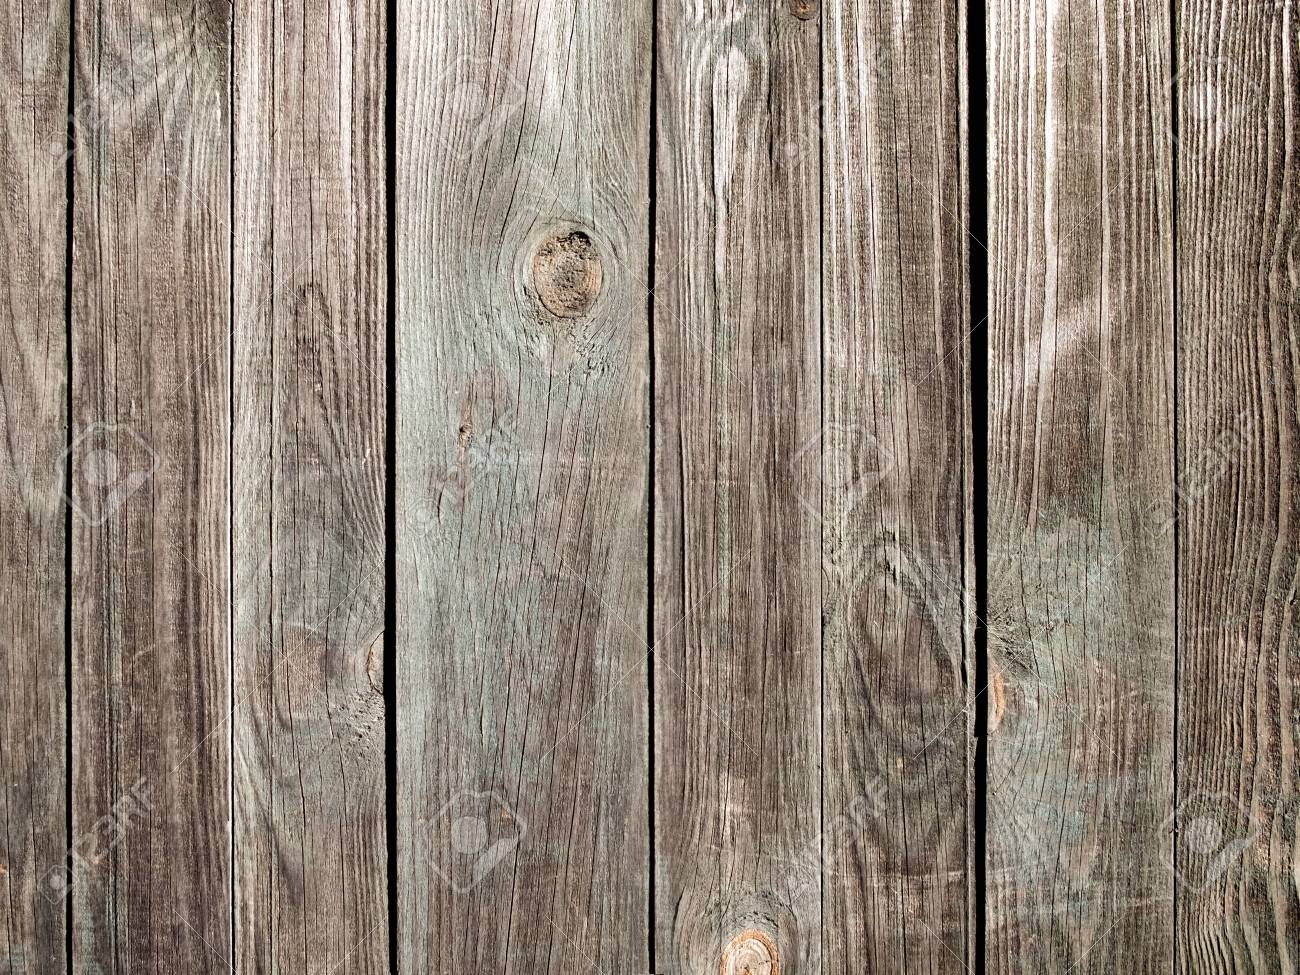 wood fence texture. Old Grey Wooden Fence Texture Stock Photo - 89499845 Wood